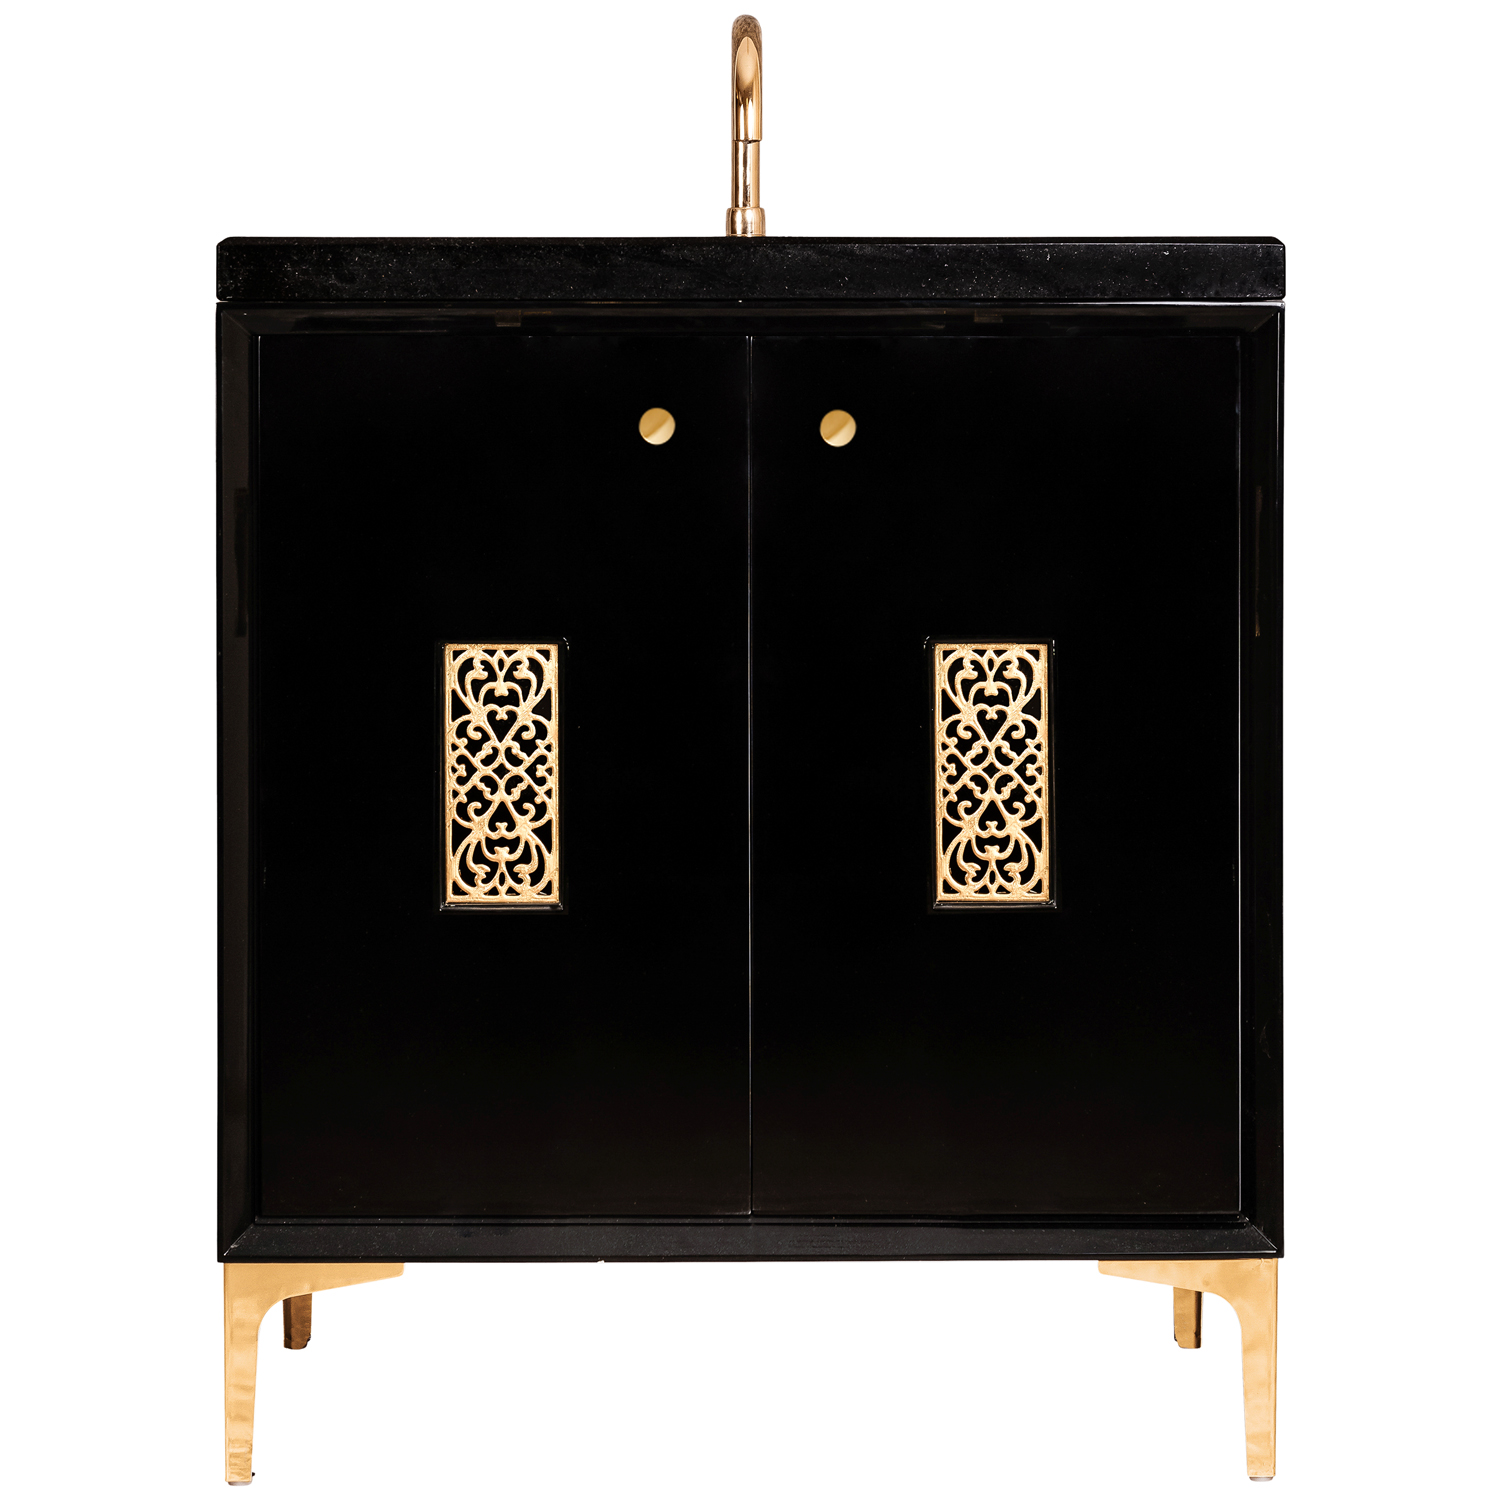 """VAN30B-012 30"""" Black Frame With Filigree - Shown with PB (Polished Brass)"""